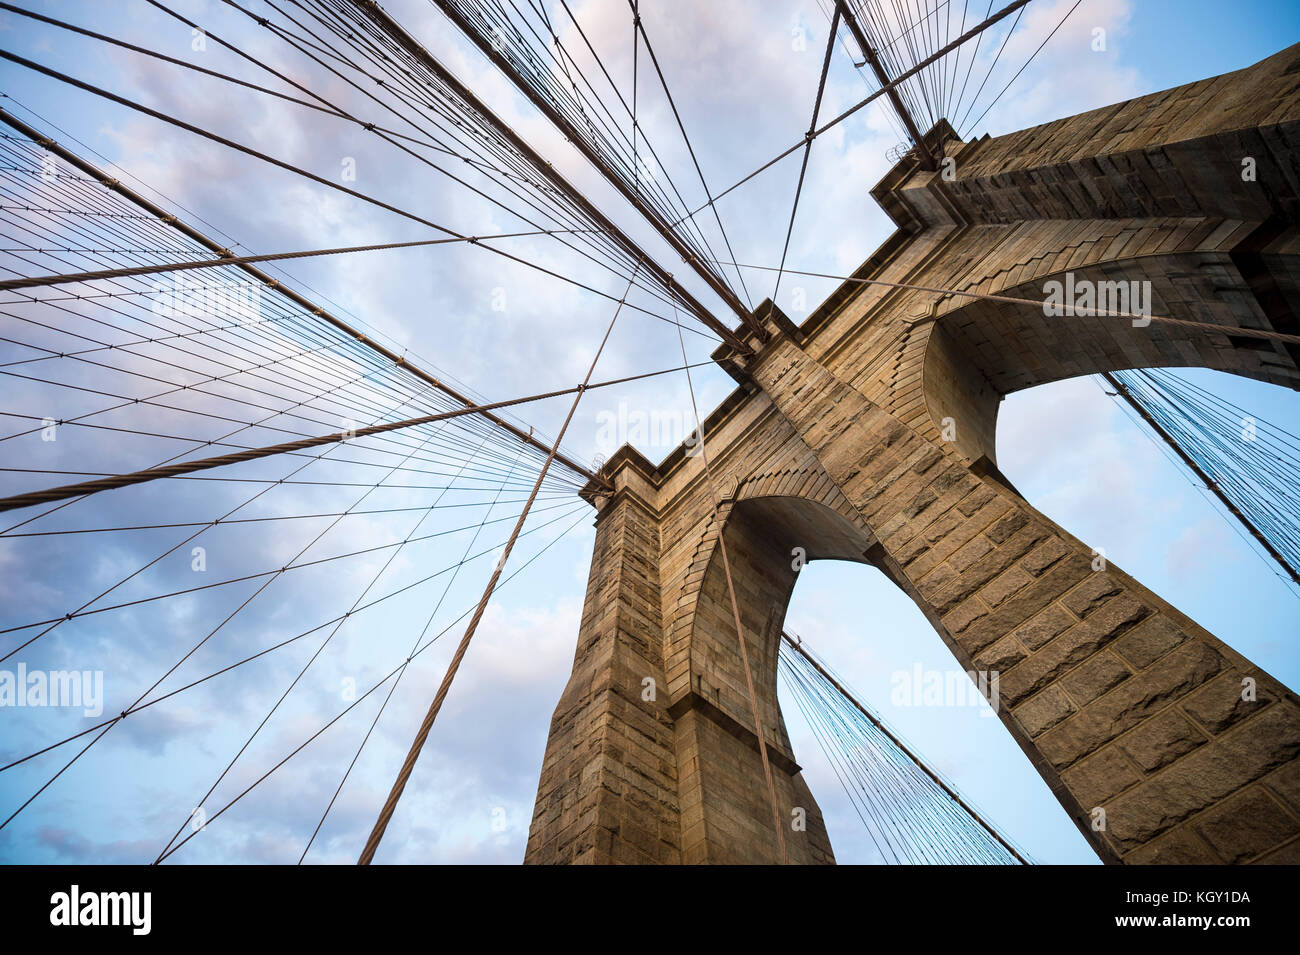 Brooklyn Bridge New York City close up architectural detail - Stock Image